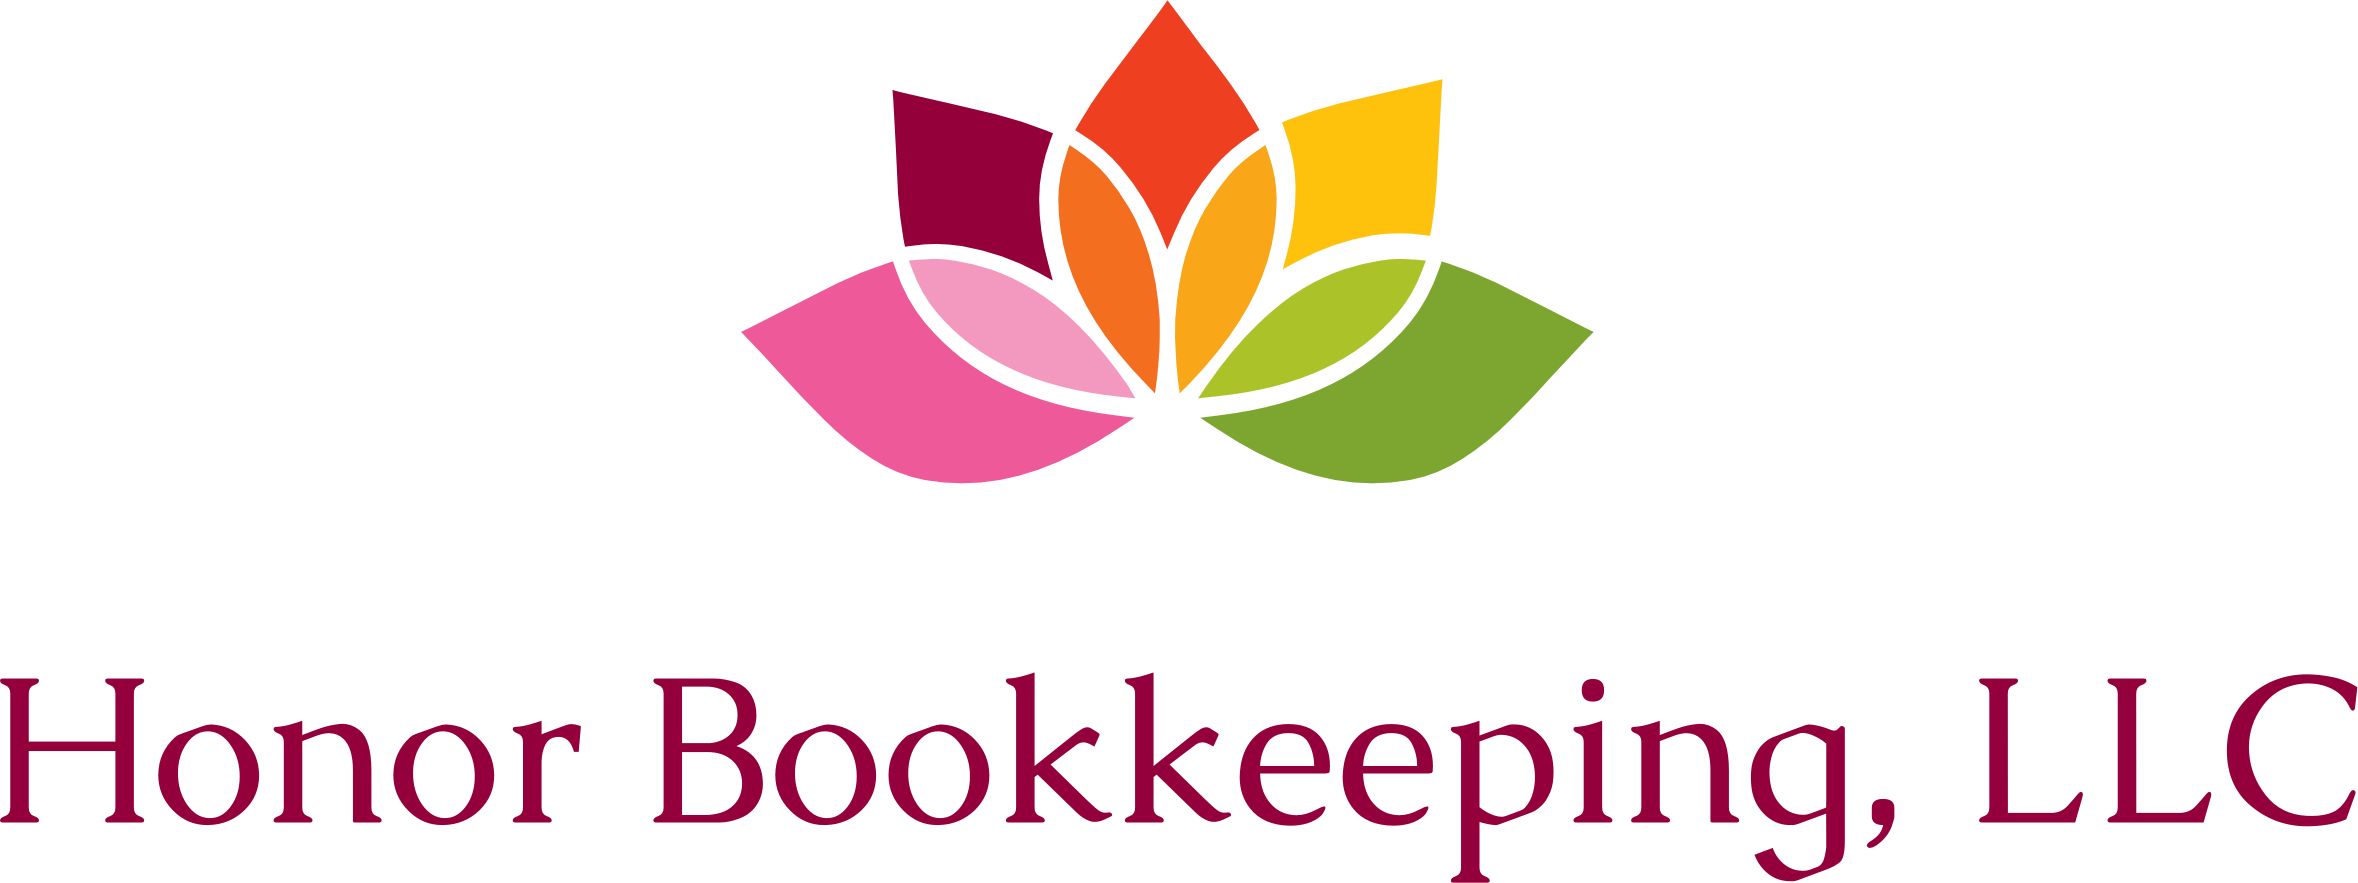 Honor Bookkeeping, LLC